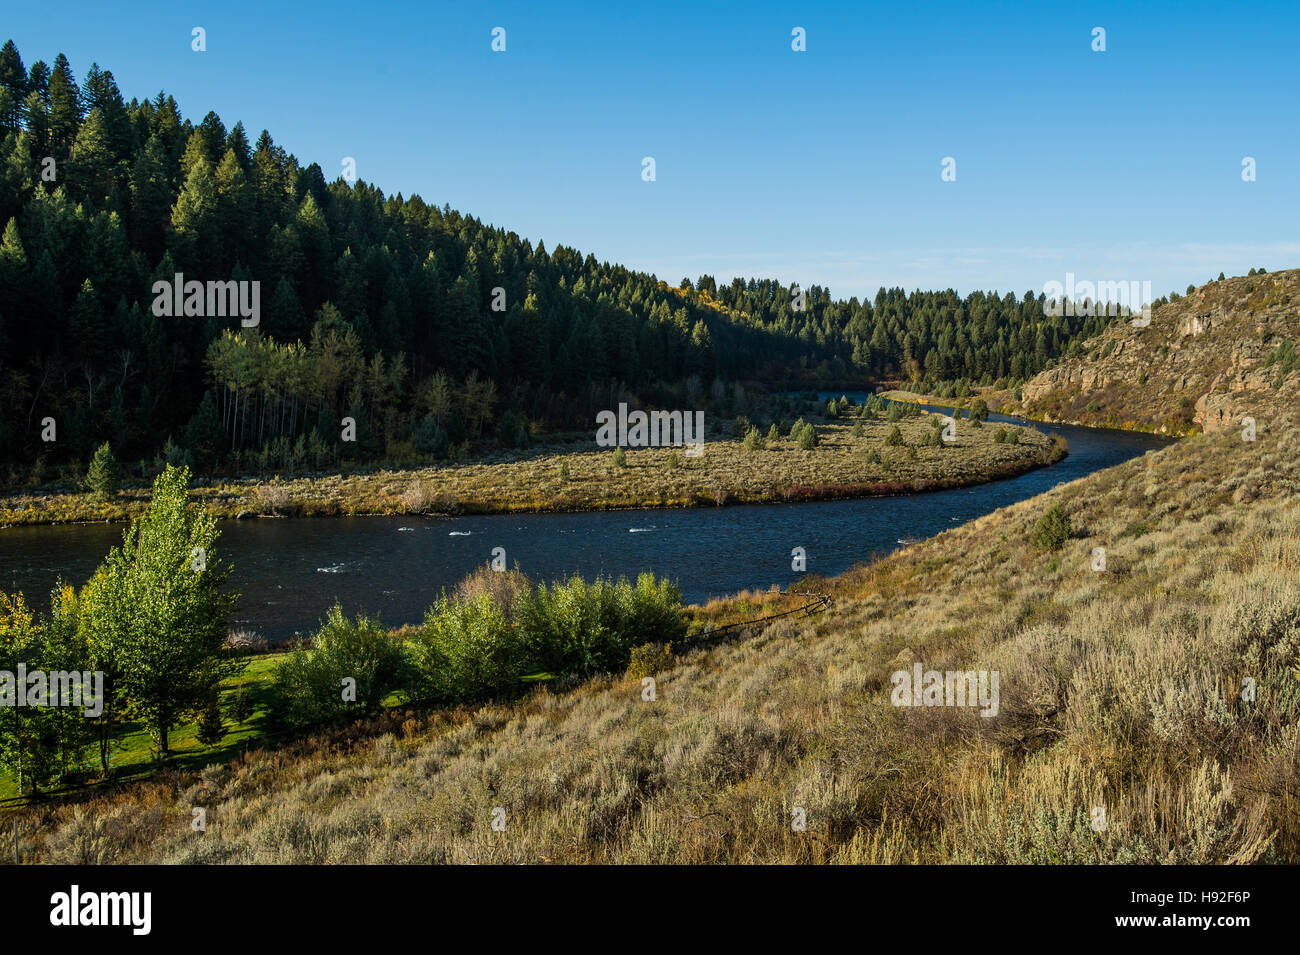 The Henry's Fork River in Idaho - Stock Image